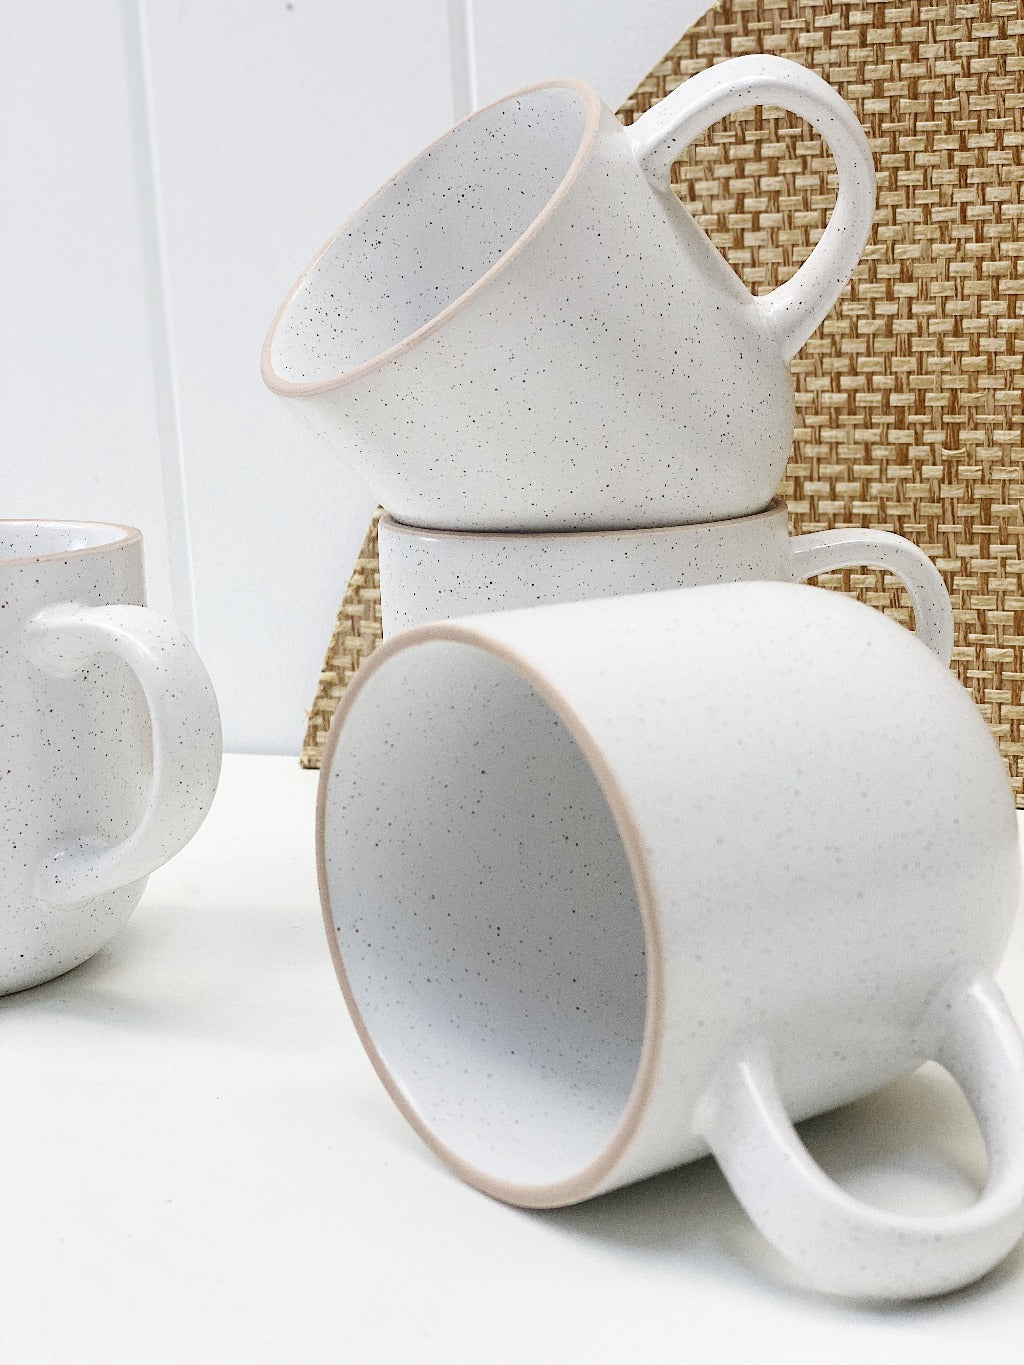 Ideal for everyday use is Salt&Pepper's four-piece HANA mug set in white. Each mug has a simple yet modern shape with a slight speckle tone throughout and is finished with a natural-coloured rim. 12 x 9 cm.| Bliss Gifts & Homewares | Unit 8, 259 Princes Hwy Ulladulla | South Coast NSW | Online Retail Gift & Homeware Shopping | 0427795959, 44541523